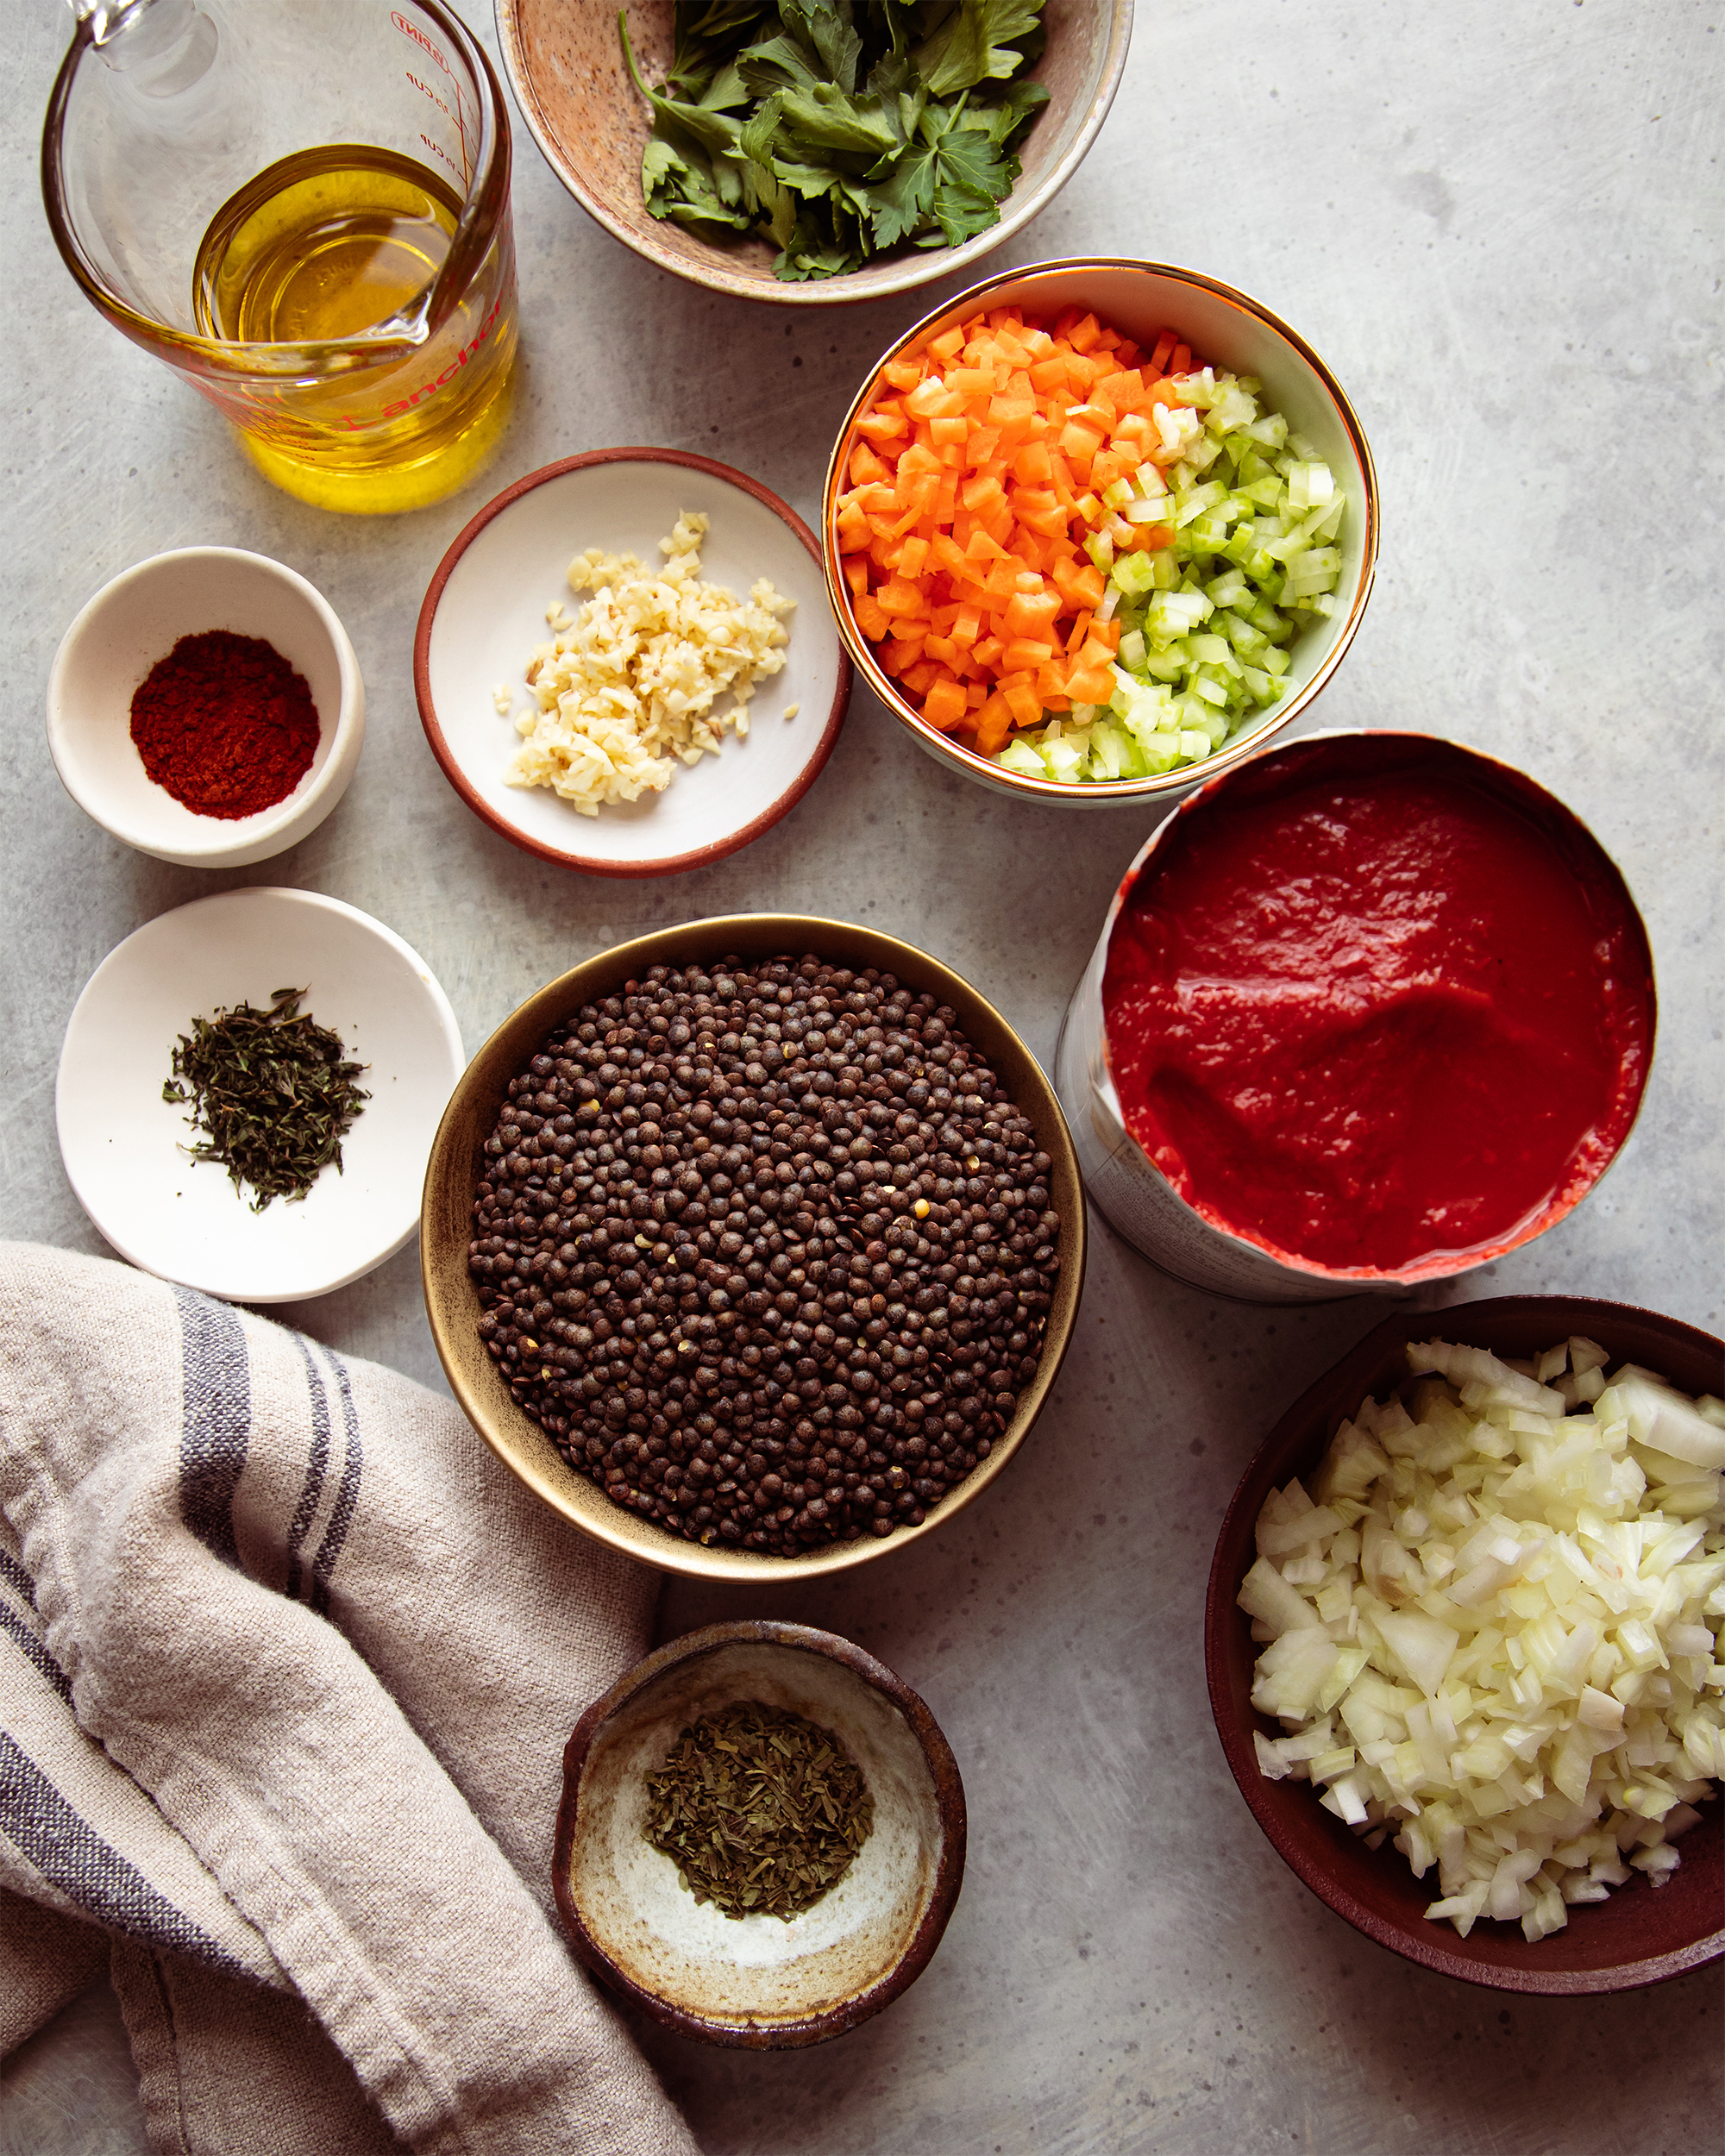 Image taken from overhead displays prepped ingredients for a lentil soup.